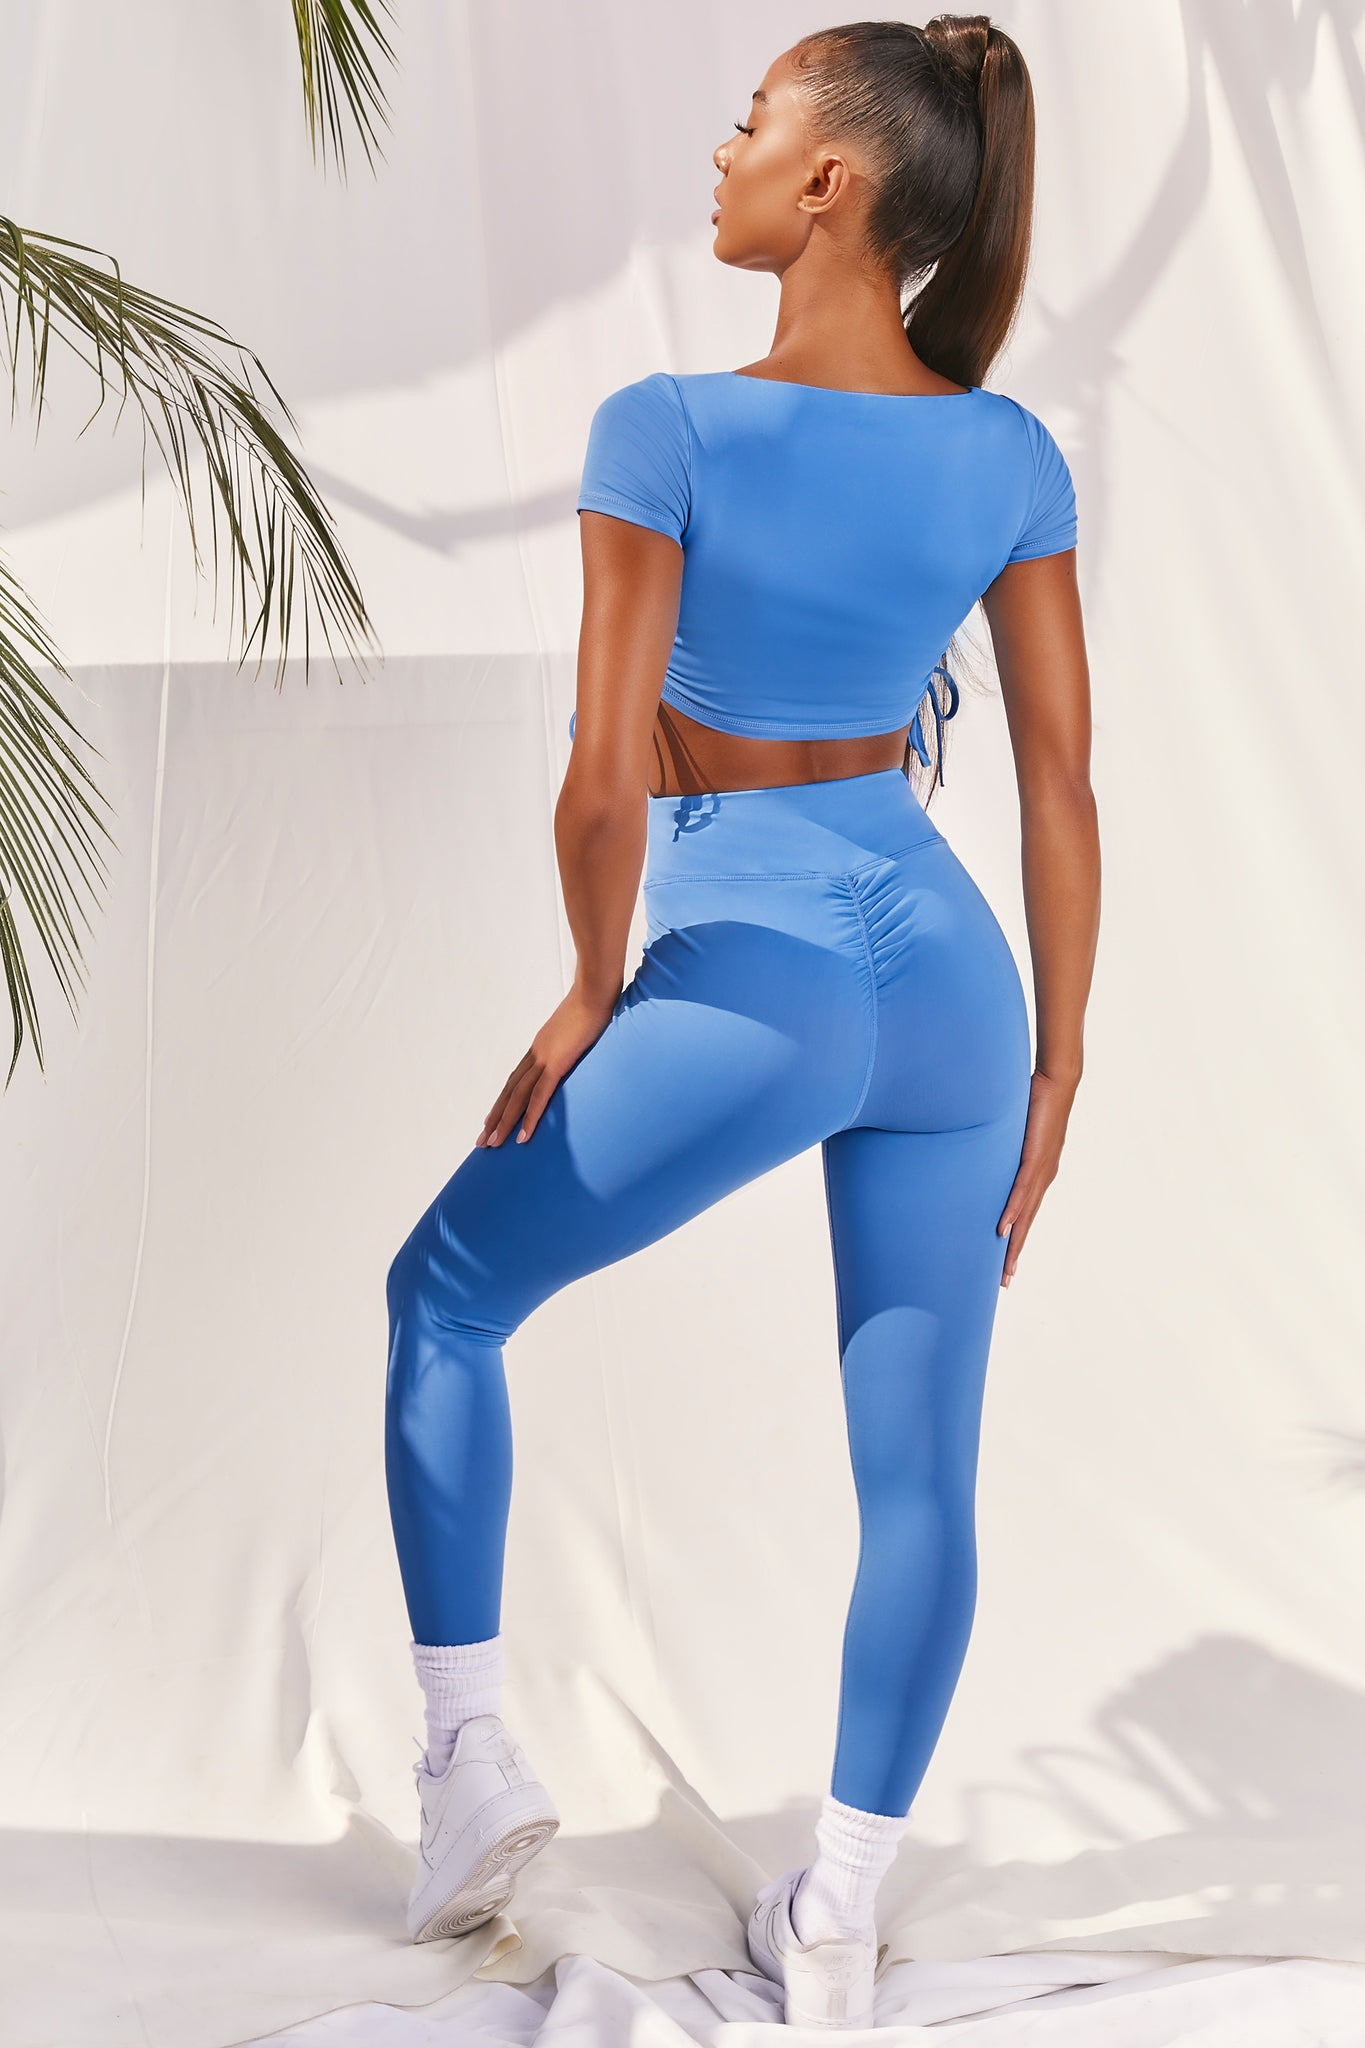 Plain bright blue slinky high waisted full length gym leggings with rear ruched seam. Image 3 of 6.